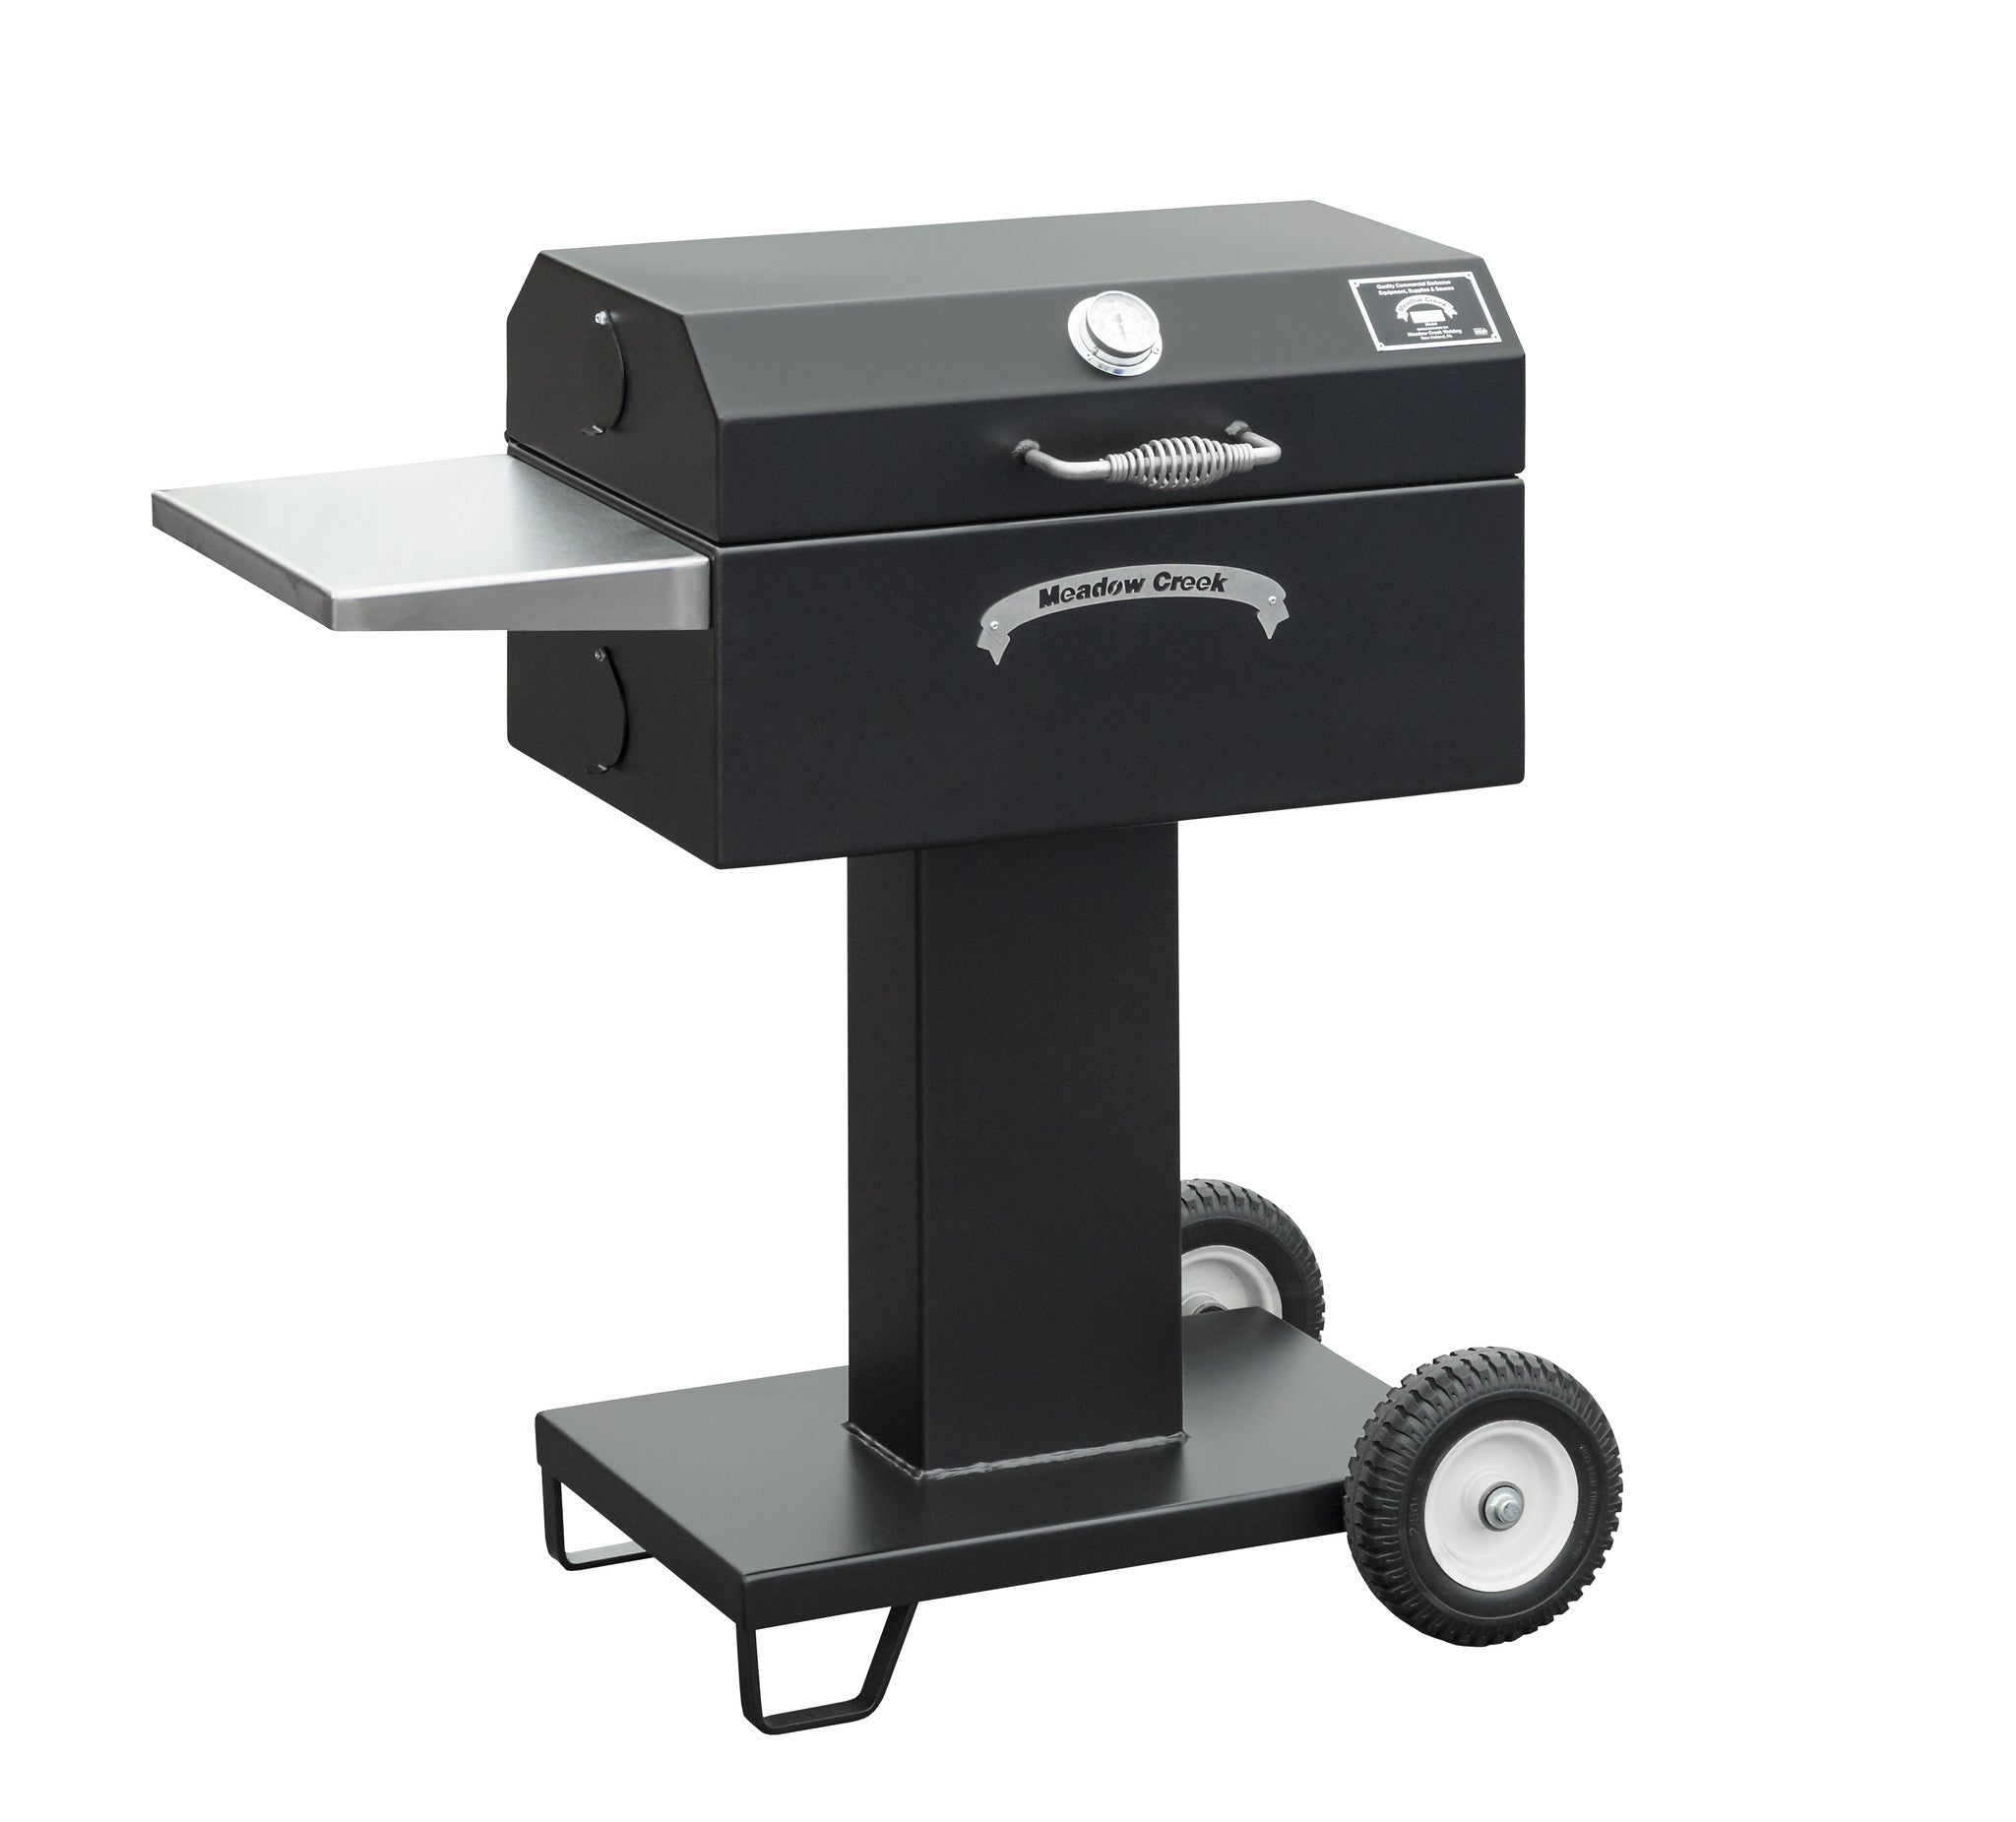 pg 26 charcoal grill - Charcoal Grills